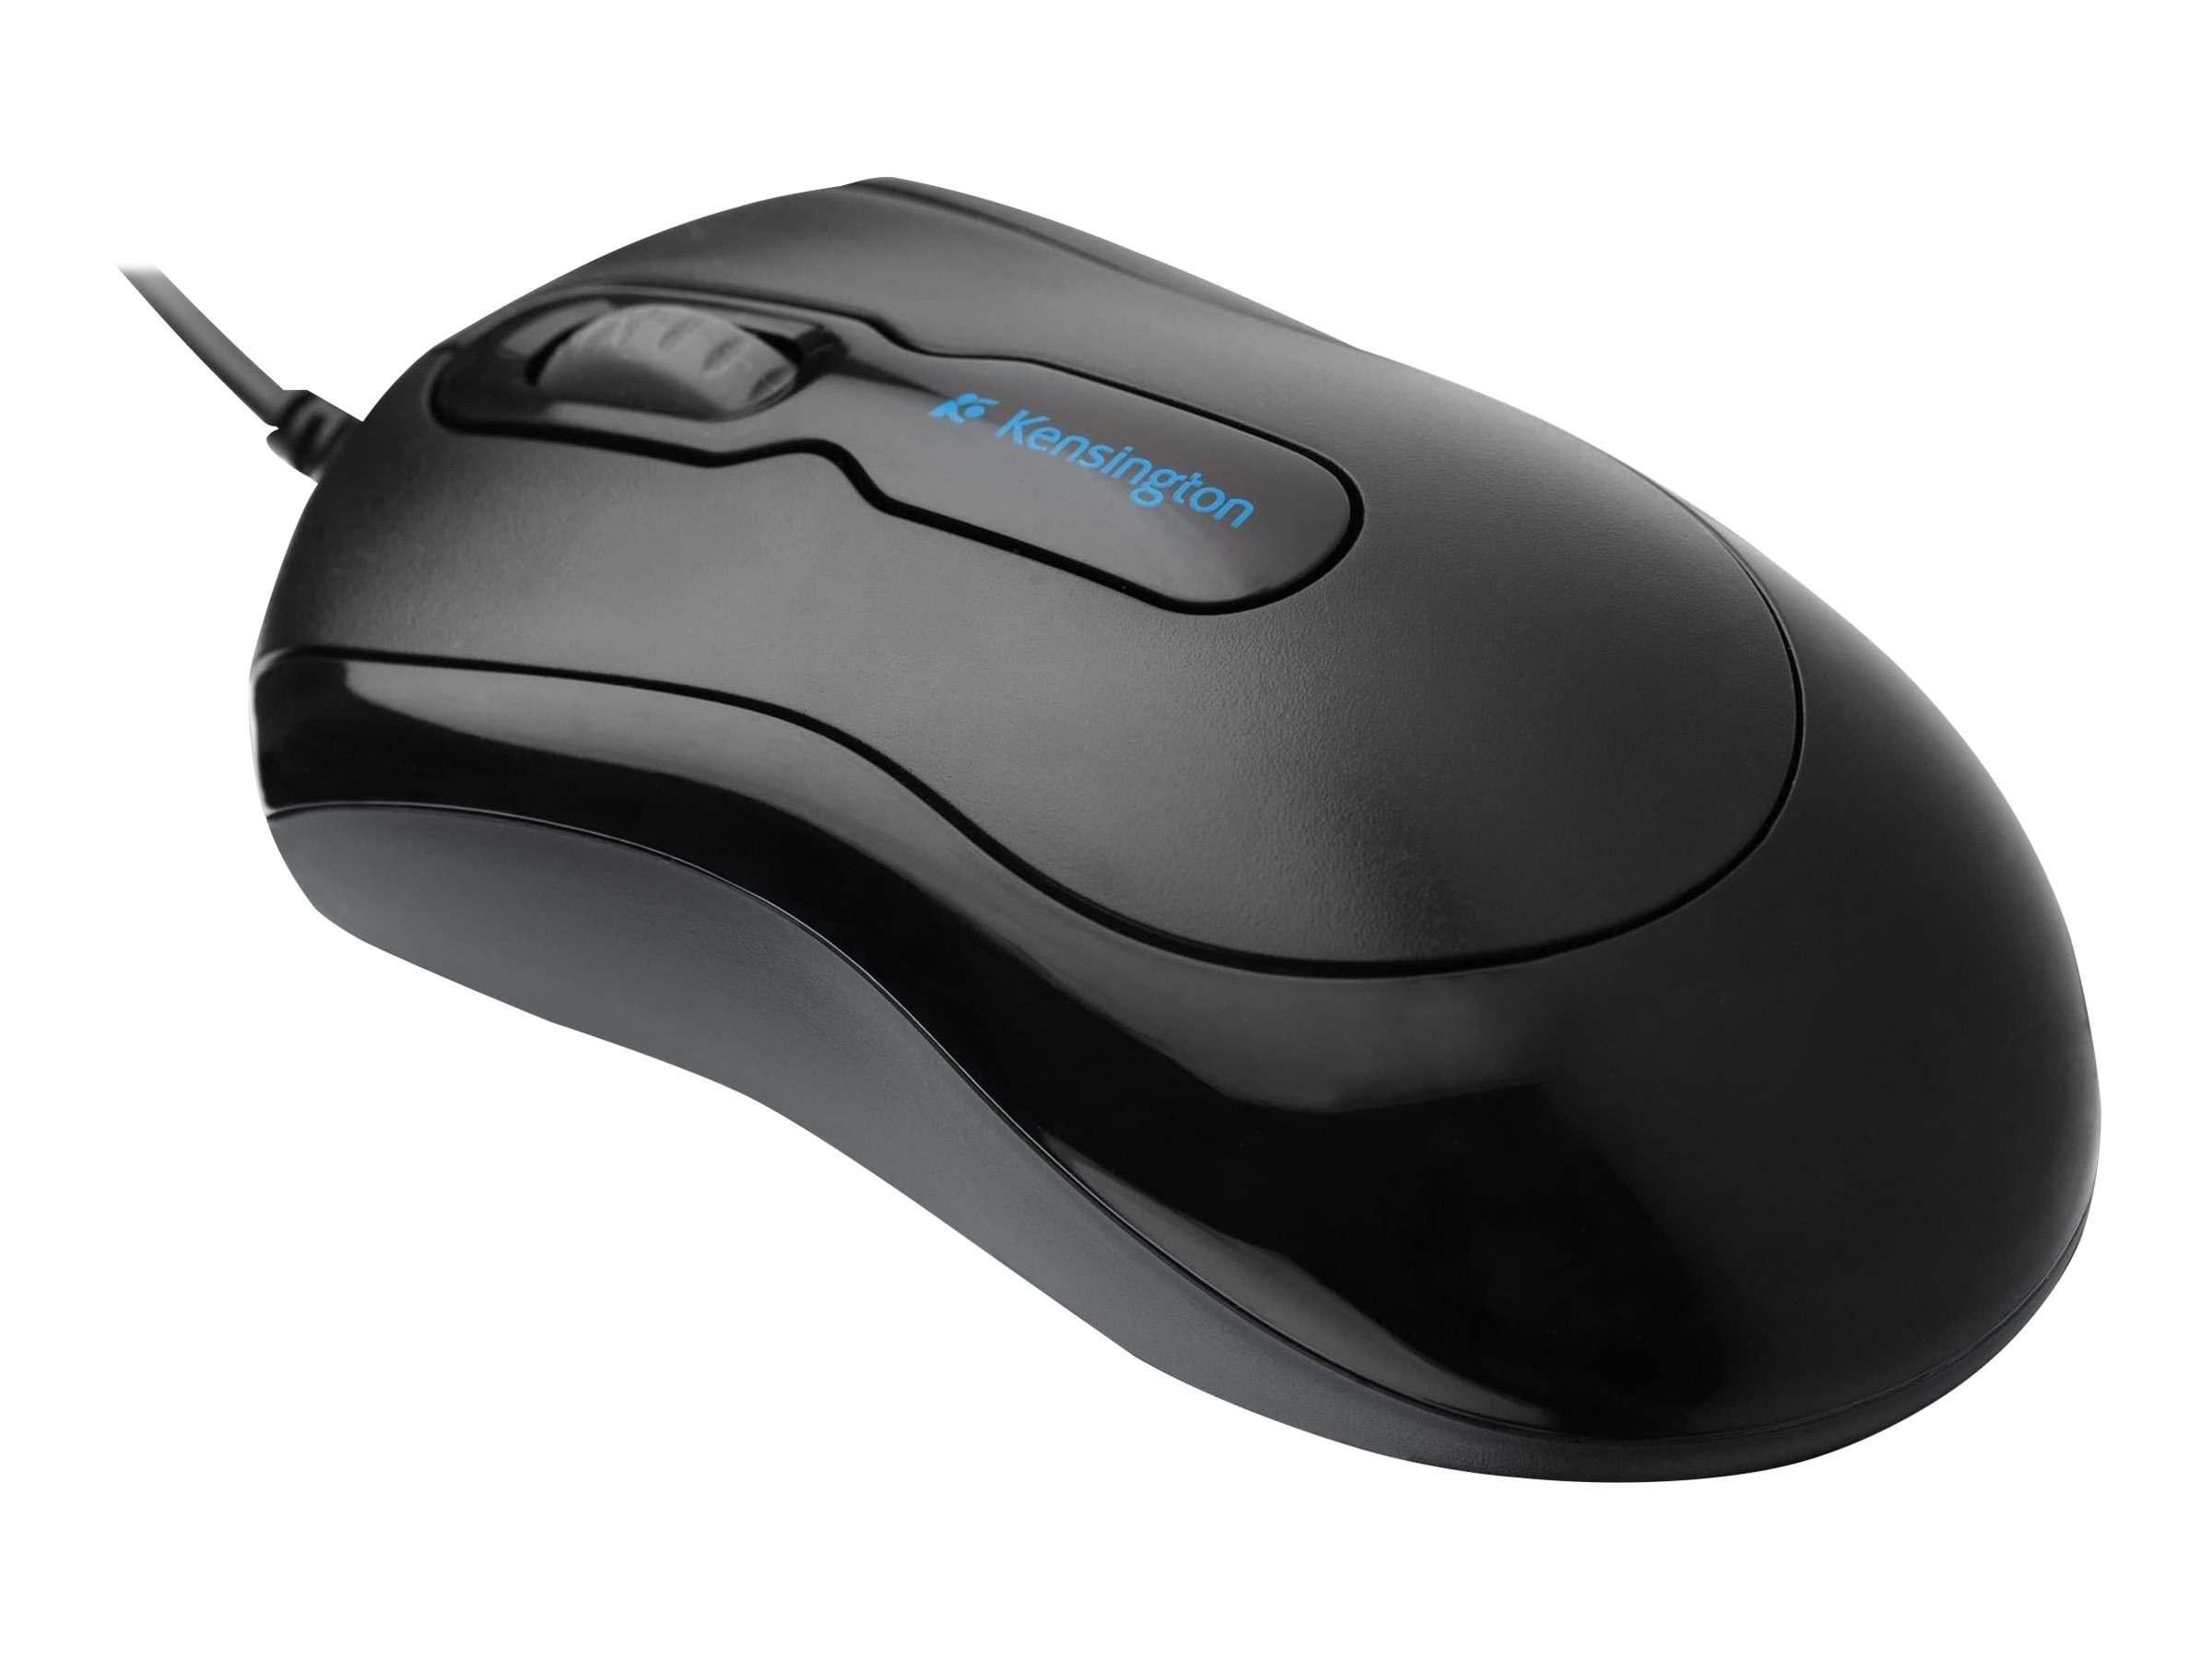 Kensington Mouse in a Box, USB, Black, K72356US